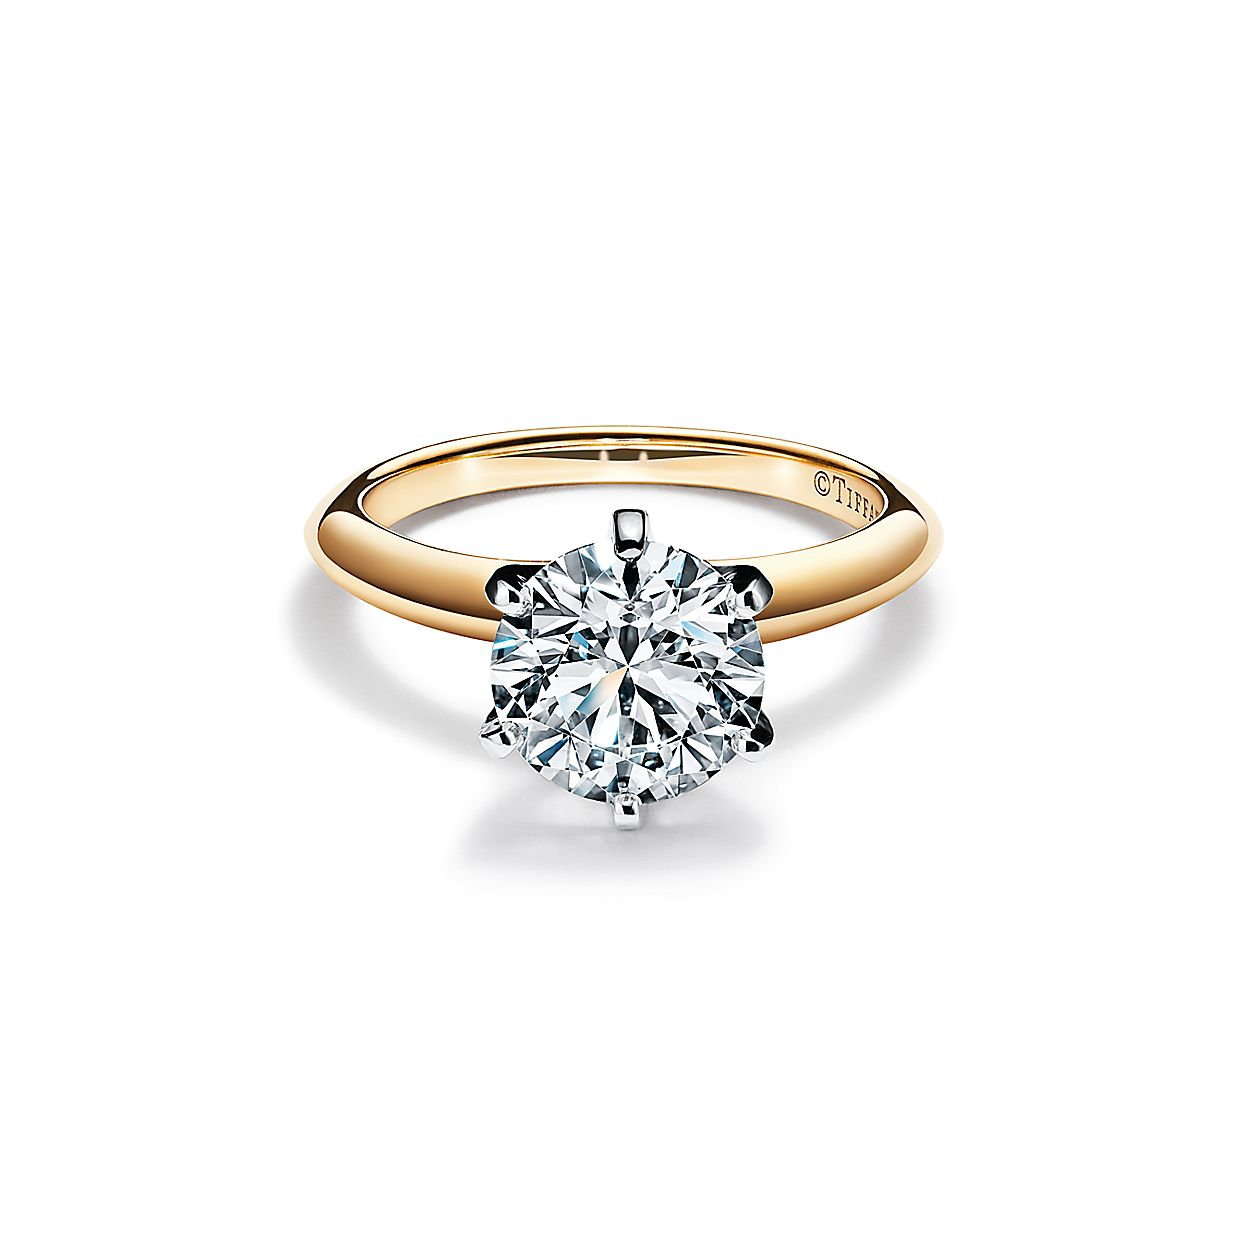 03fea2853 the-tiffany-setting-engagement-ring-in-18k-yellow-gold-29965838_995646_ED_M.jpg?&op_usm=1.75,1.0,6.0&$cropN=<MediaCrop>&defaultImage=  ...